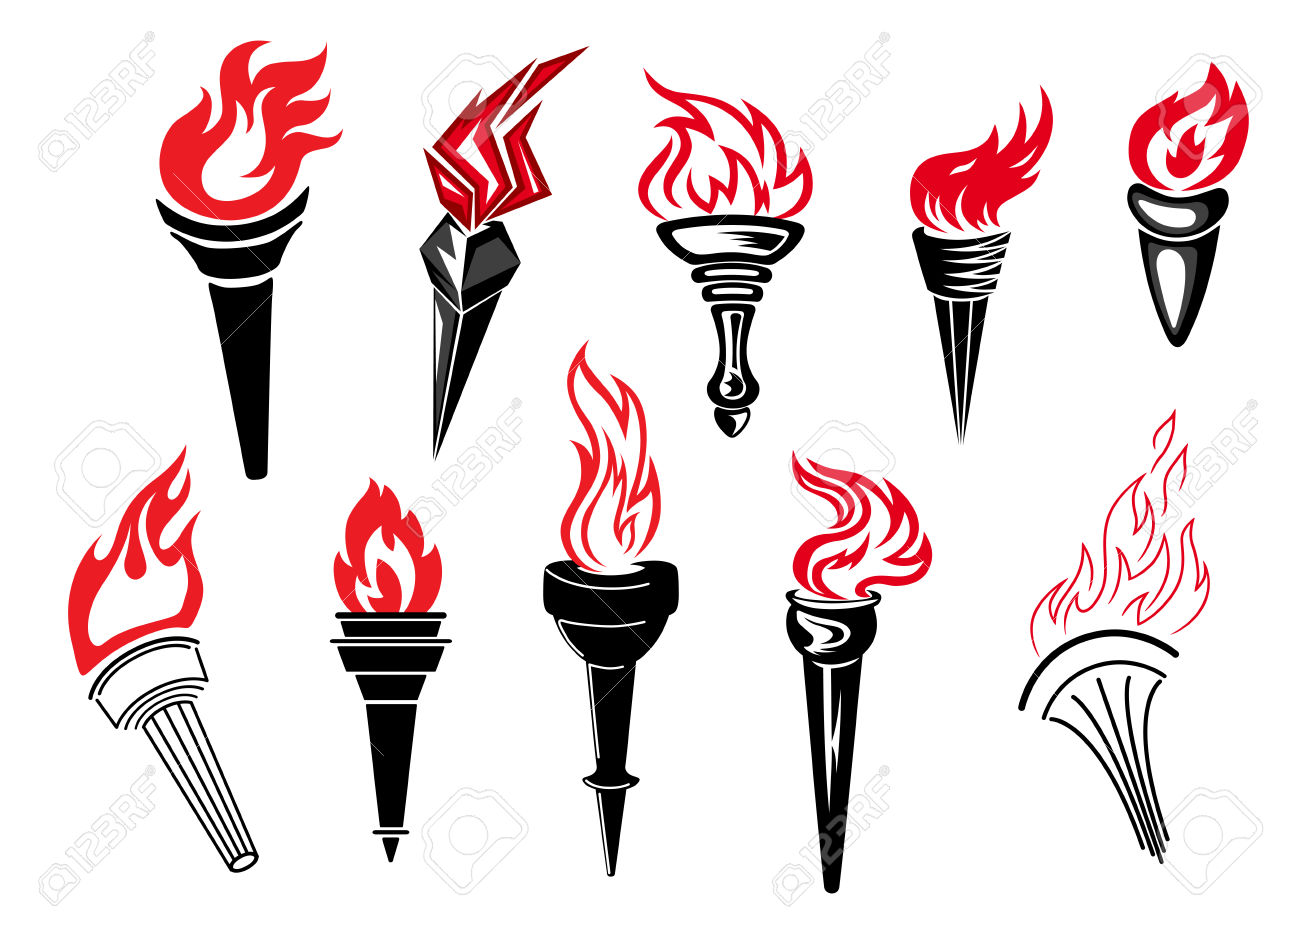 Flaming Torch Icons With Burning Flames For Sport And History.